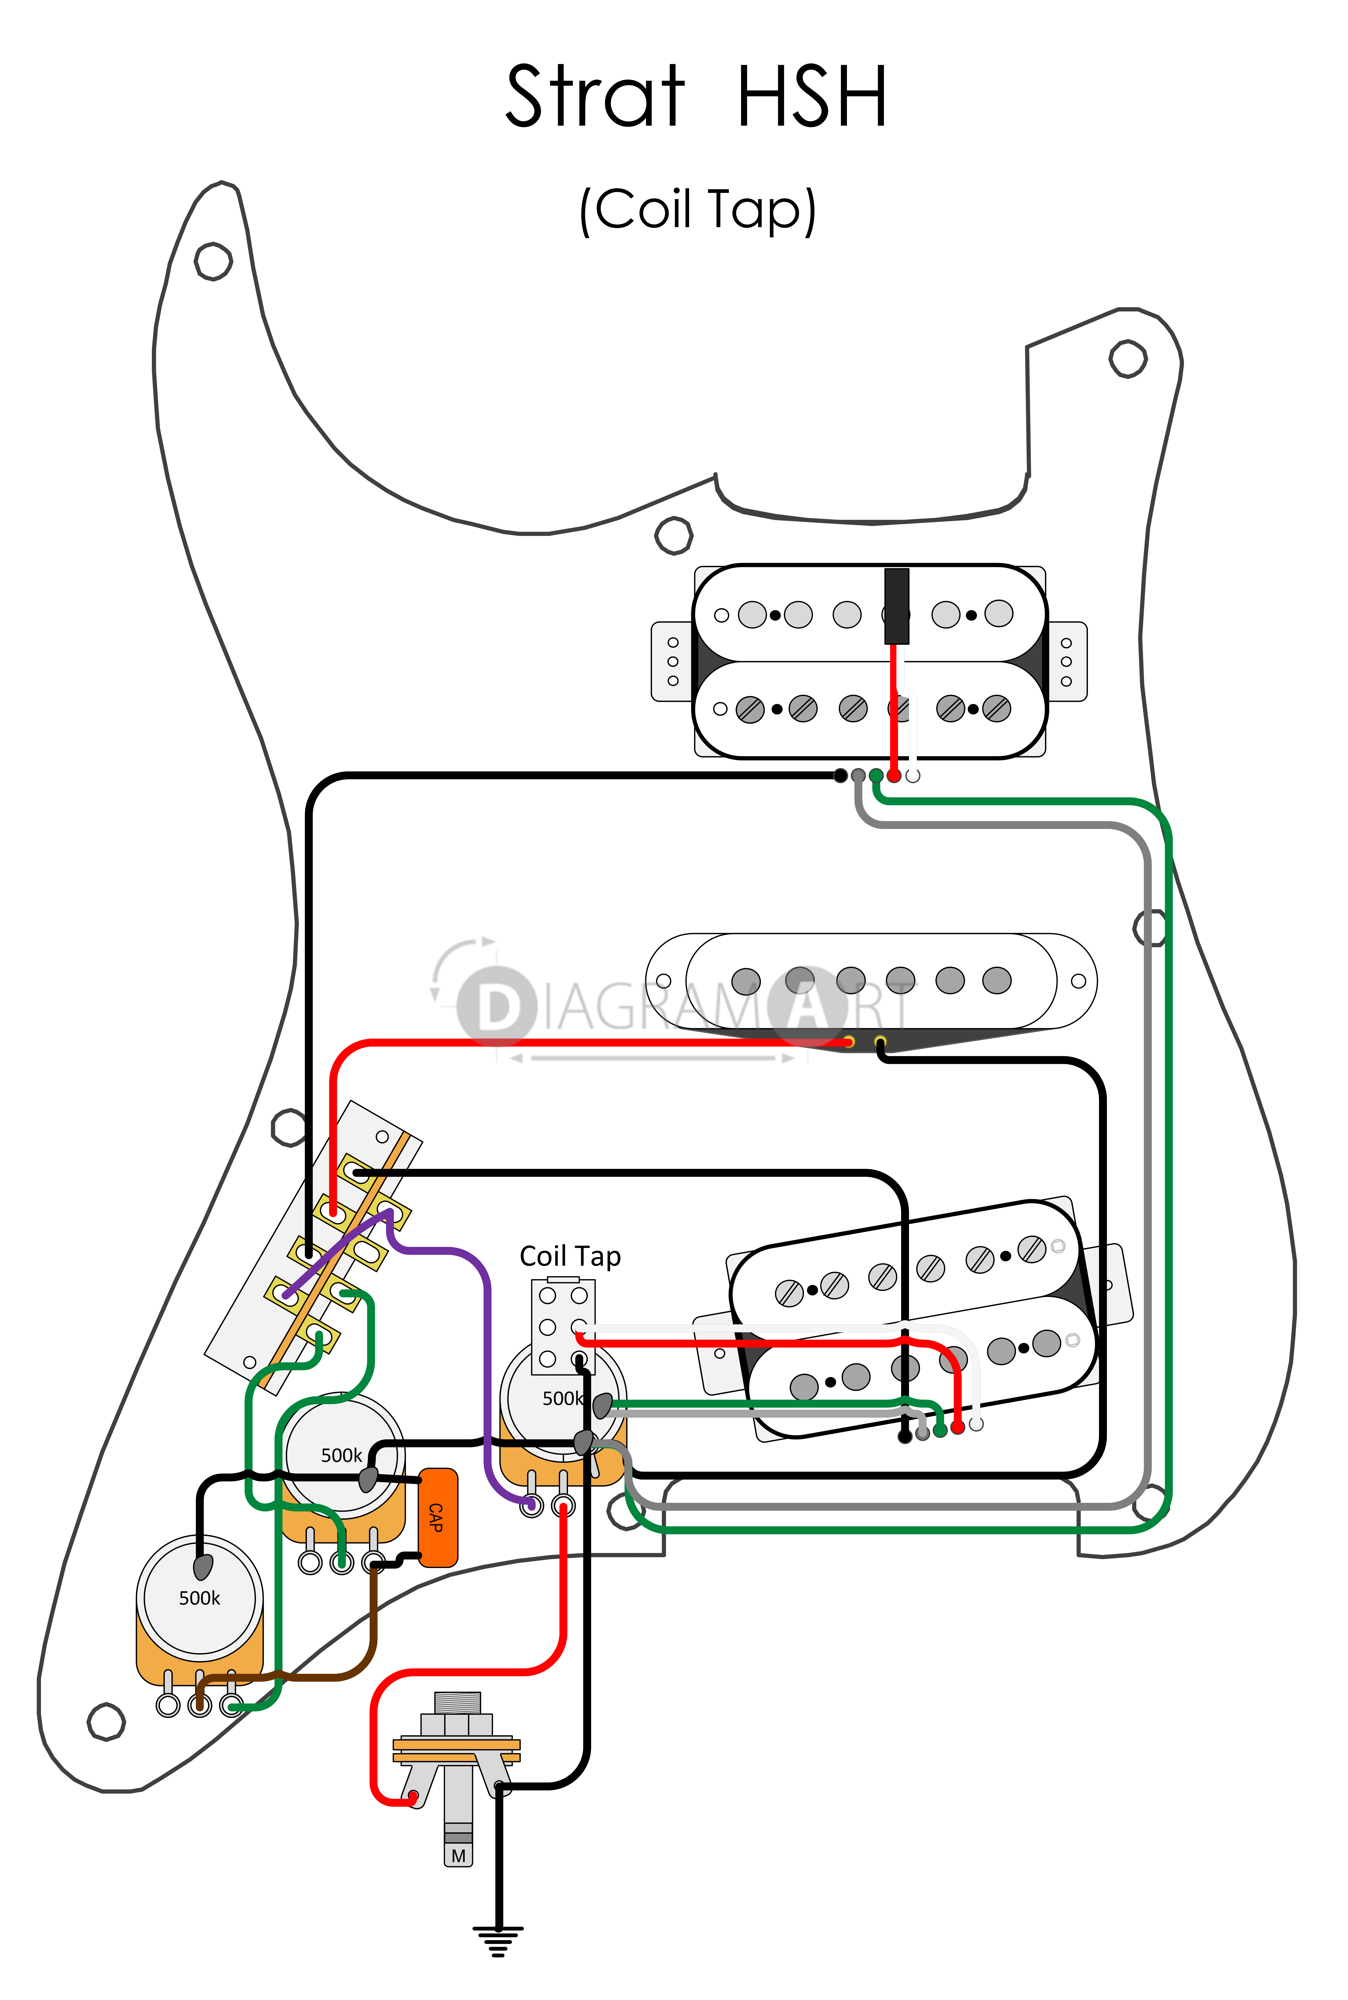 Free Download Hsh Wiring Diagram Electrical Diagrams Gsr205 Prestige Trusted Seymour Duncan For Fender